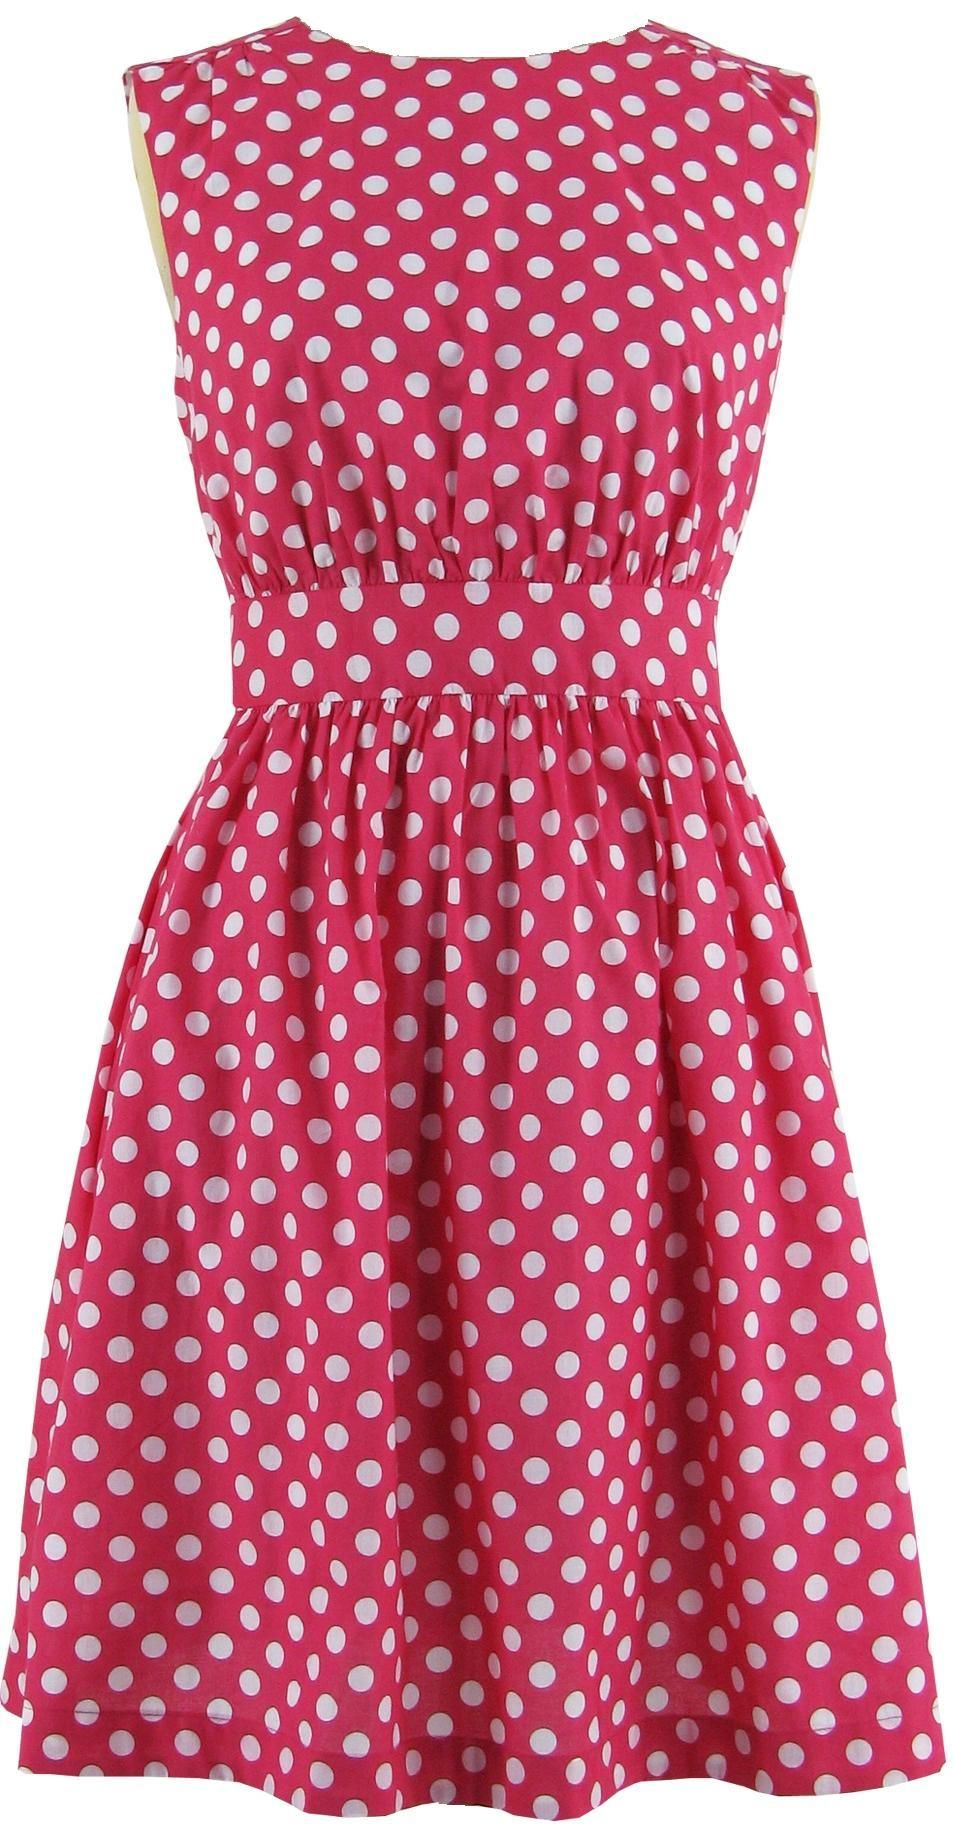 pink dresses for women | ... Fin Lucy Polka Dot Dress Pink, Dress ...